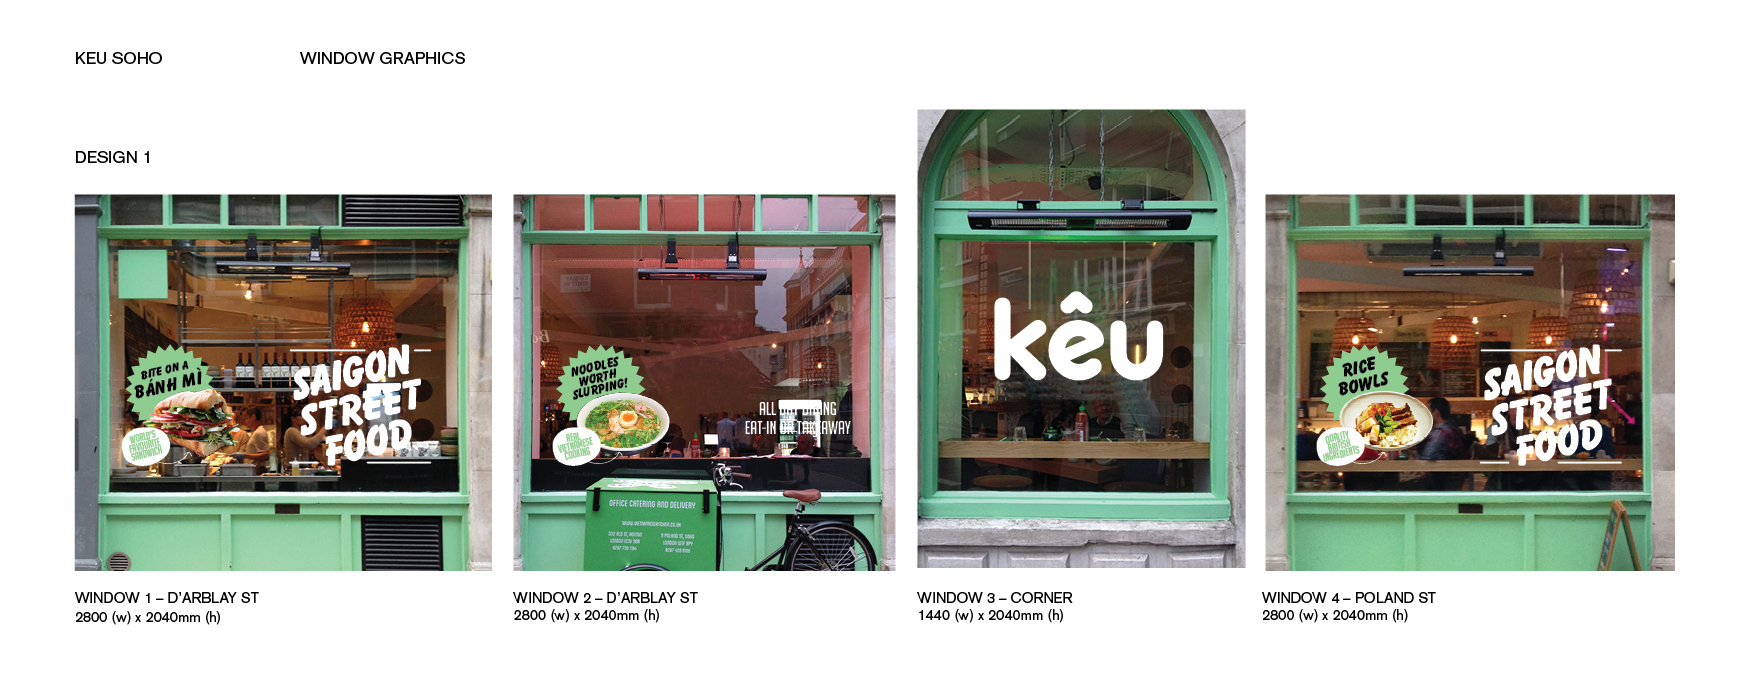 Keu_Soho_window